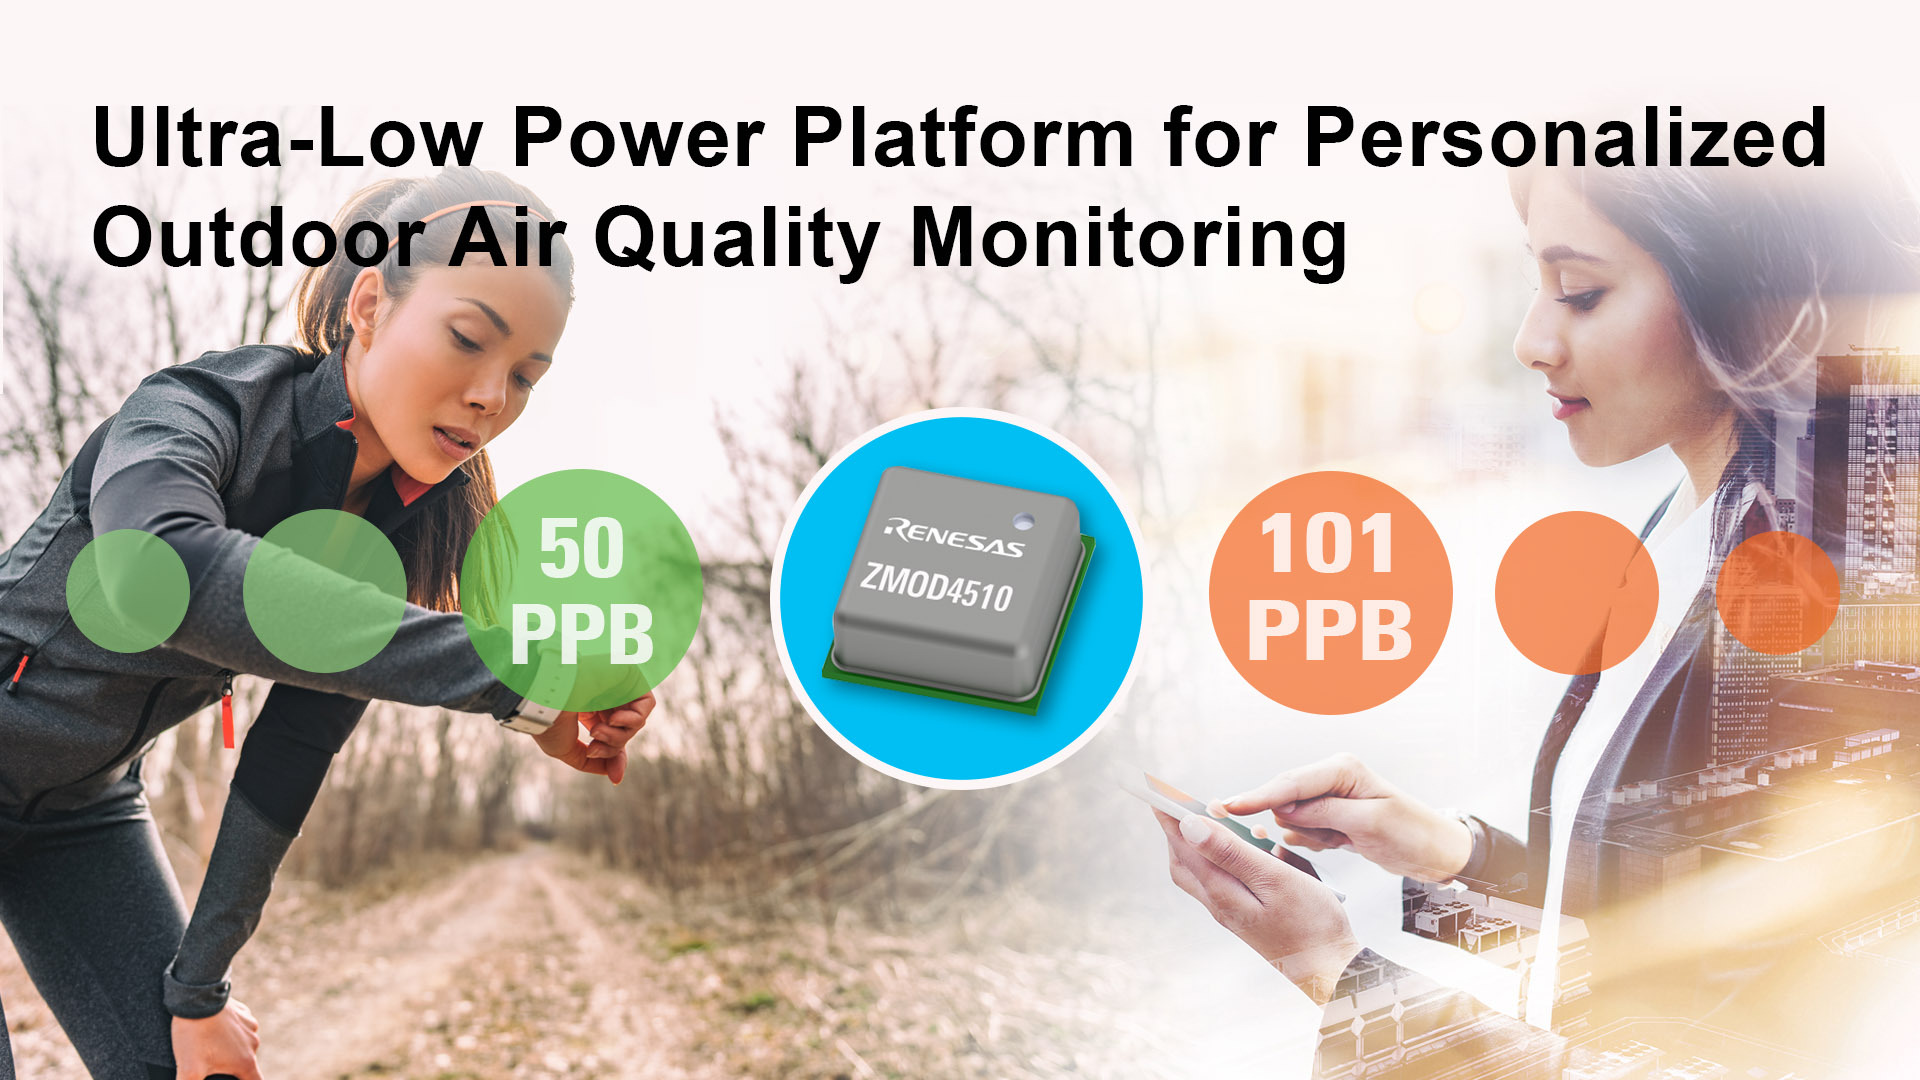 Renesas releases ultra-low power outdoor air quality sensor platform to unlock personalized air quality experience